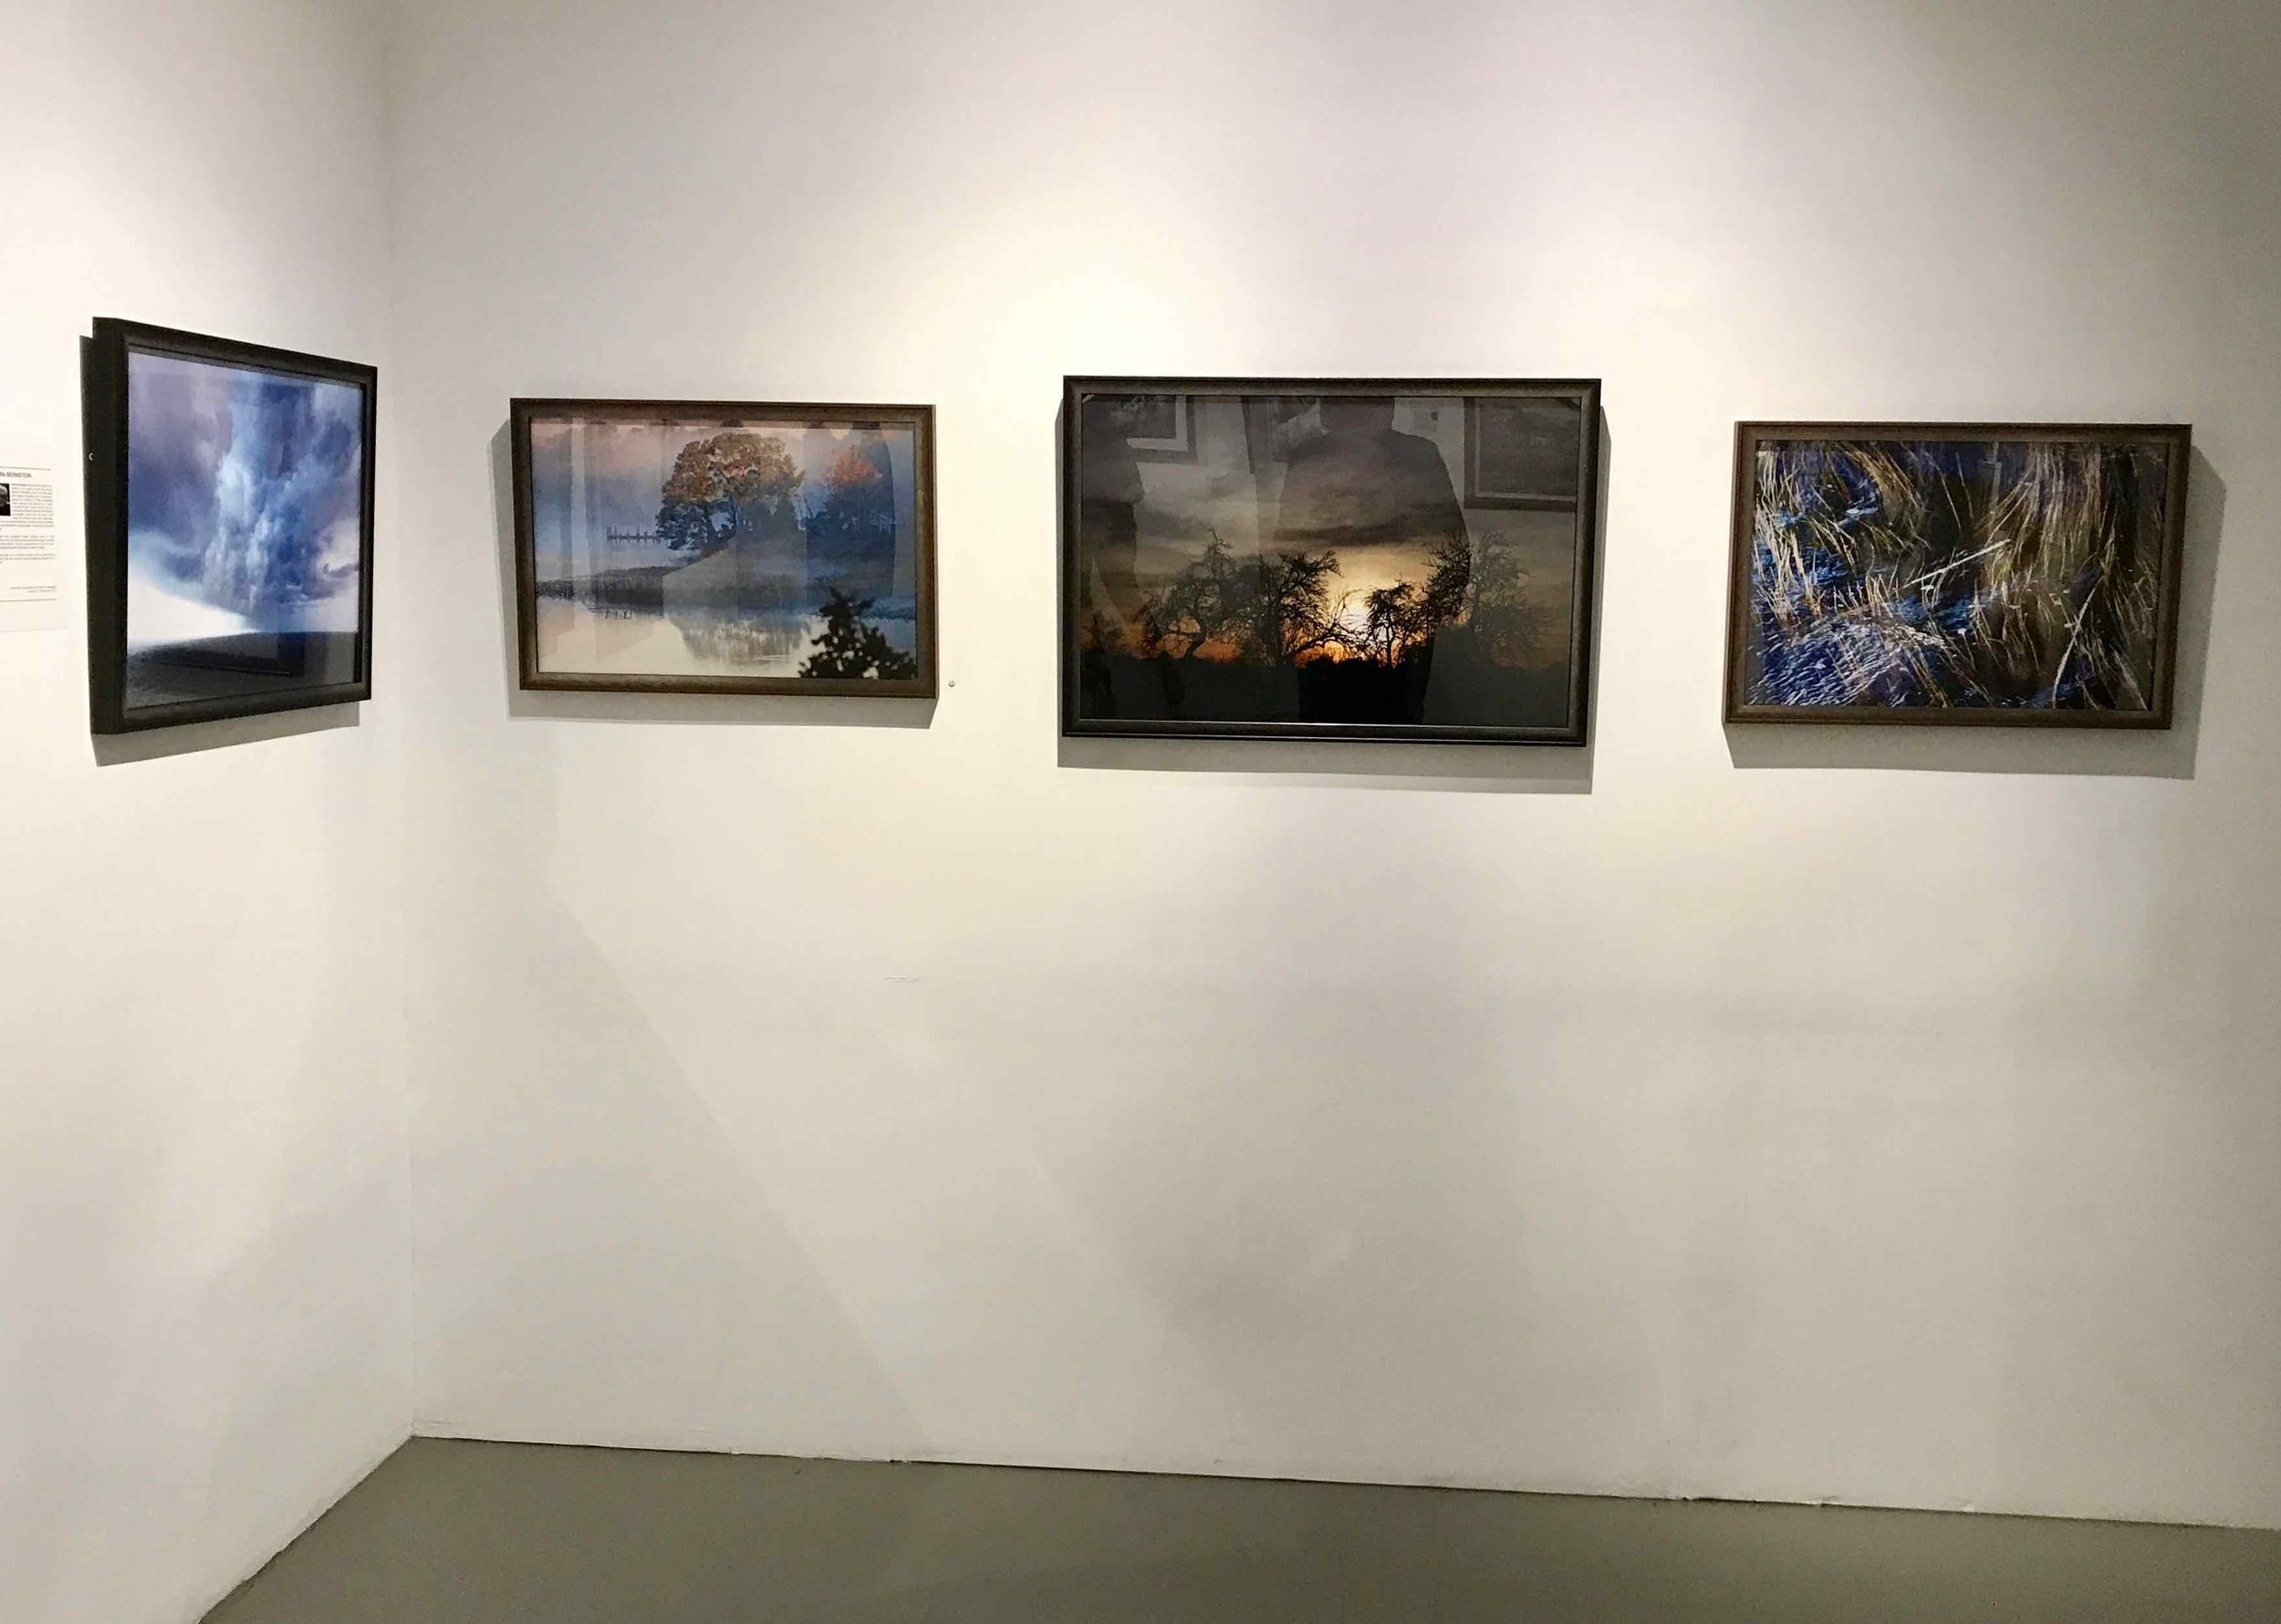 "Skimming the Storm. Mystic River. Leaving Tomorrow. High Tide in Motion (Image Titles from left to right). ""Illumination"" Exhibition at Agora Gallery in Chelsea, NY from October 20 till November 9, 2017"